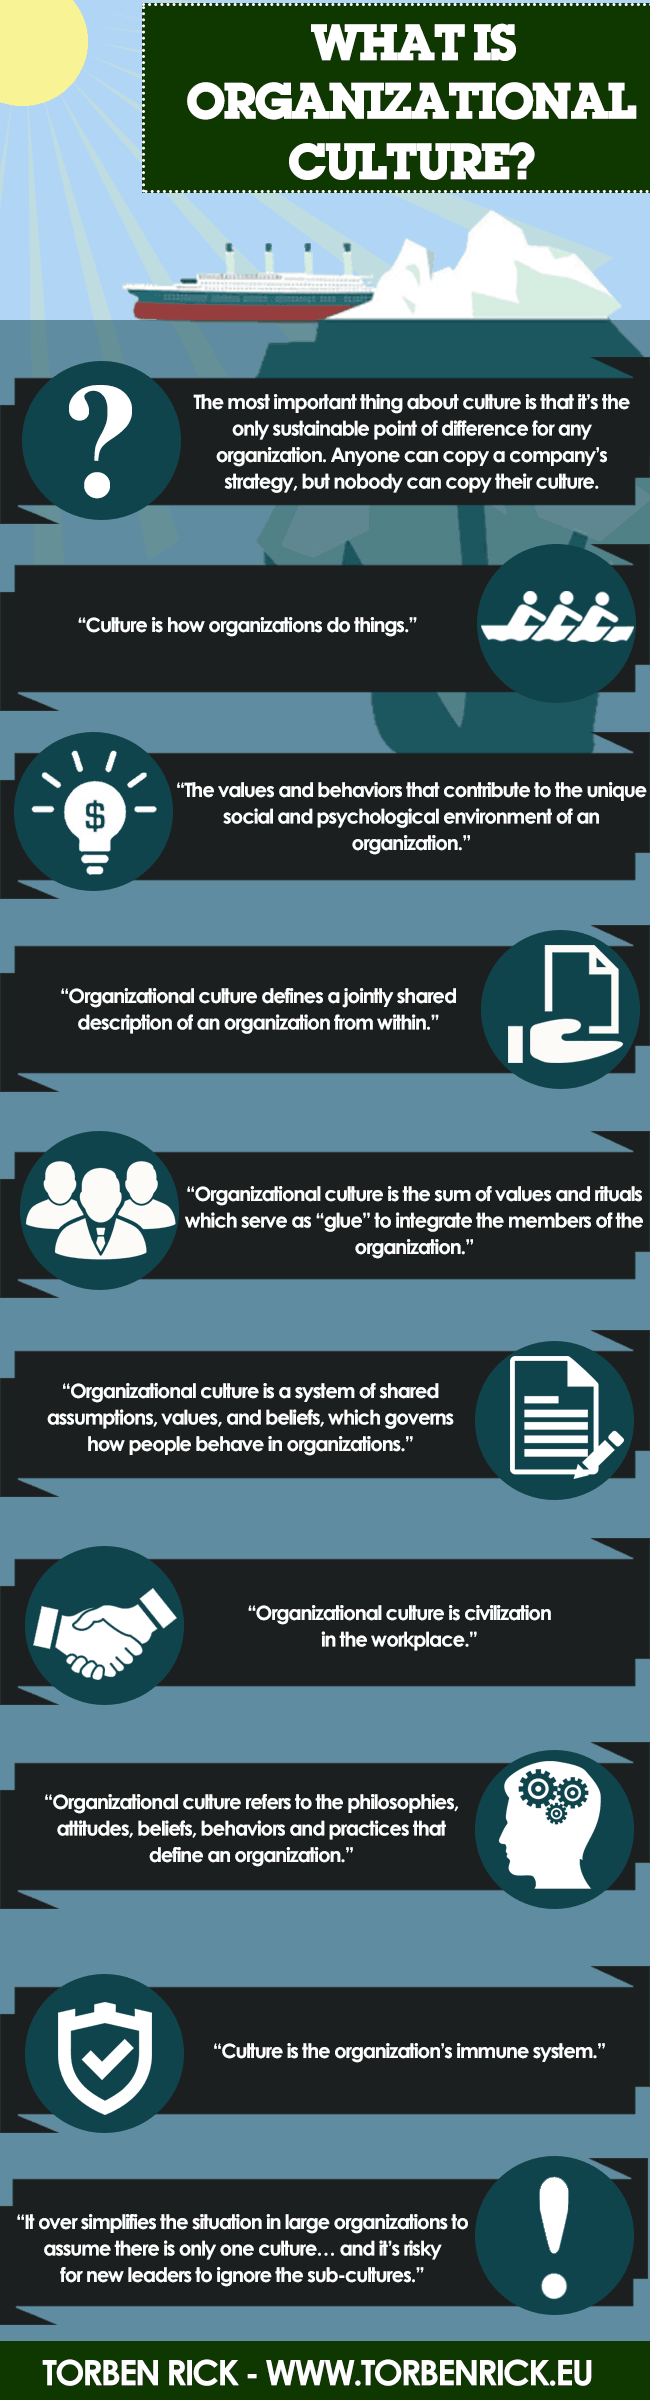 why is organizational culture change difficult